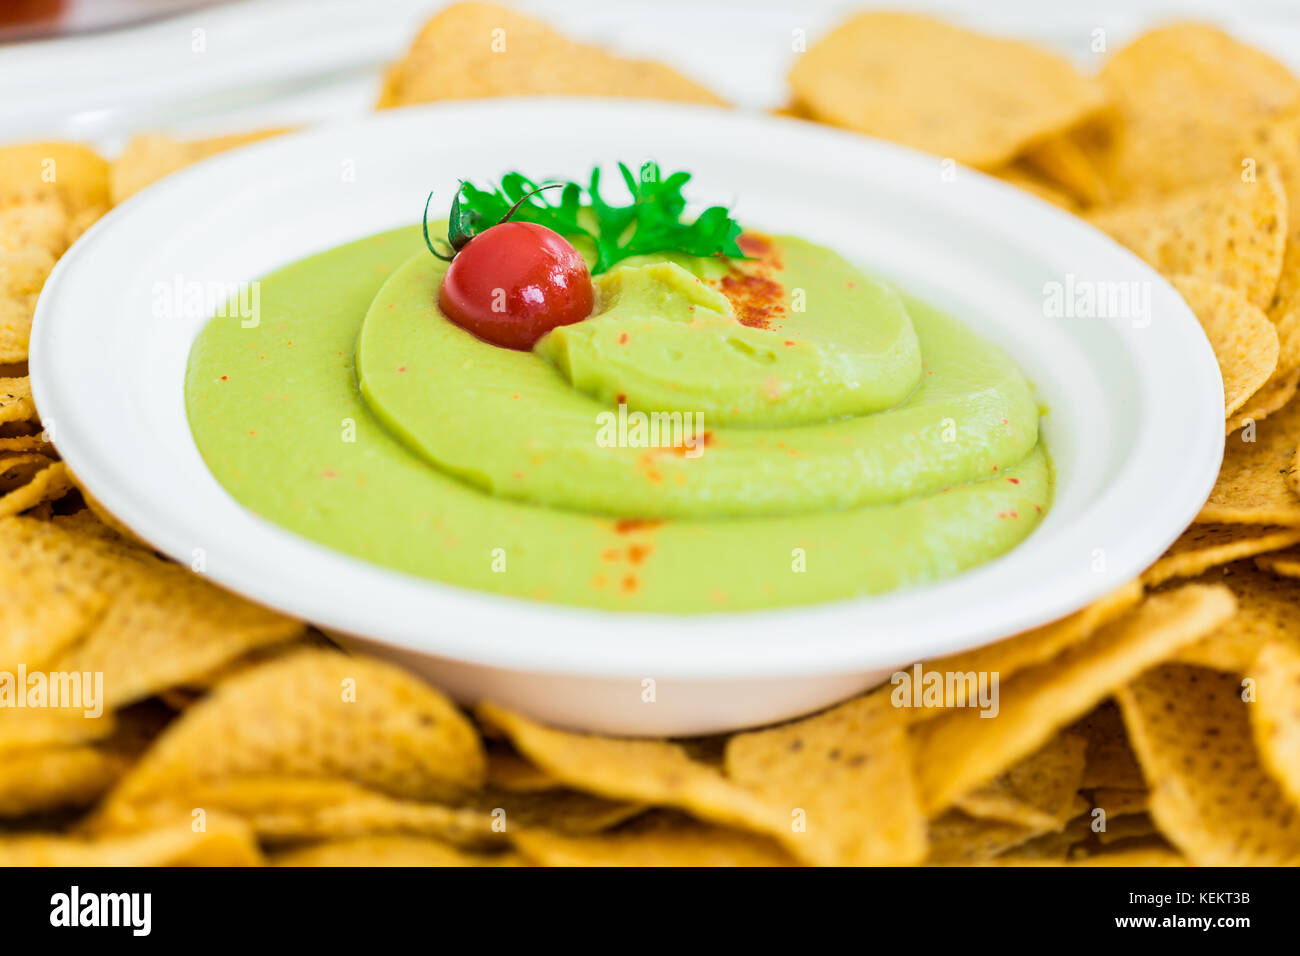 A plate of Guacamole with tortilla chips. This recipe is typically Mexican. - Stock Image